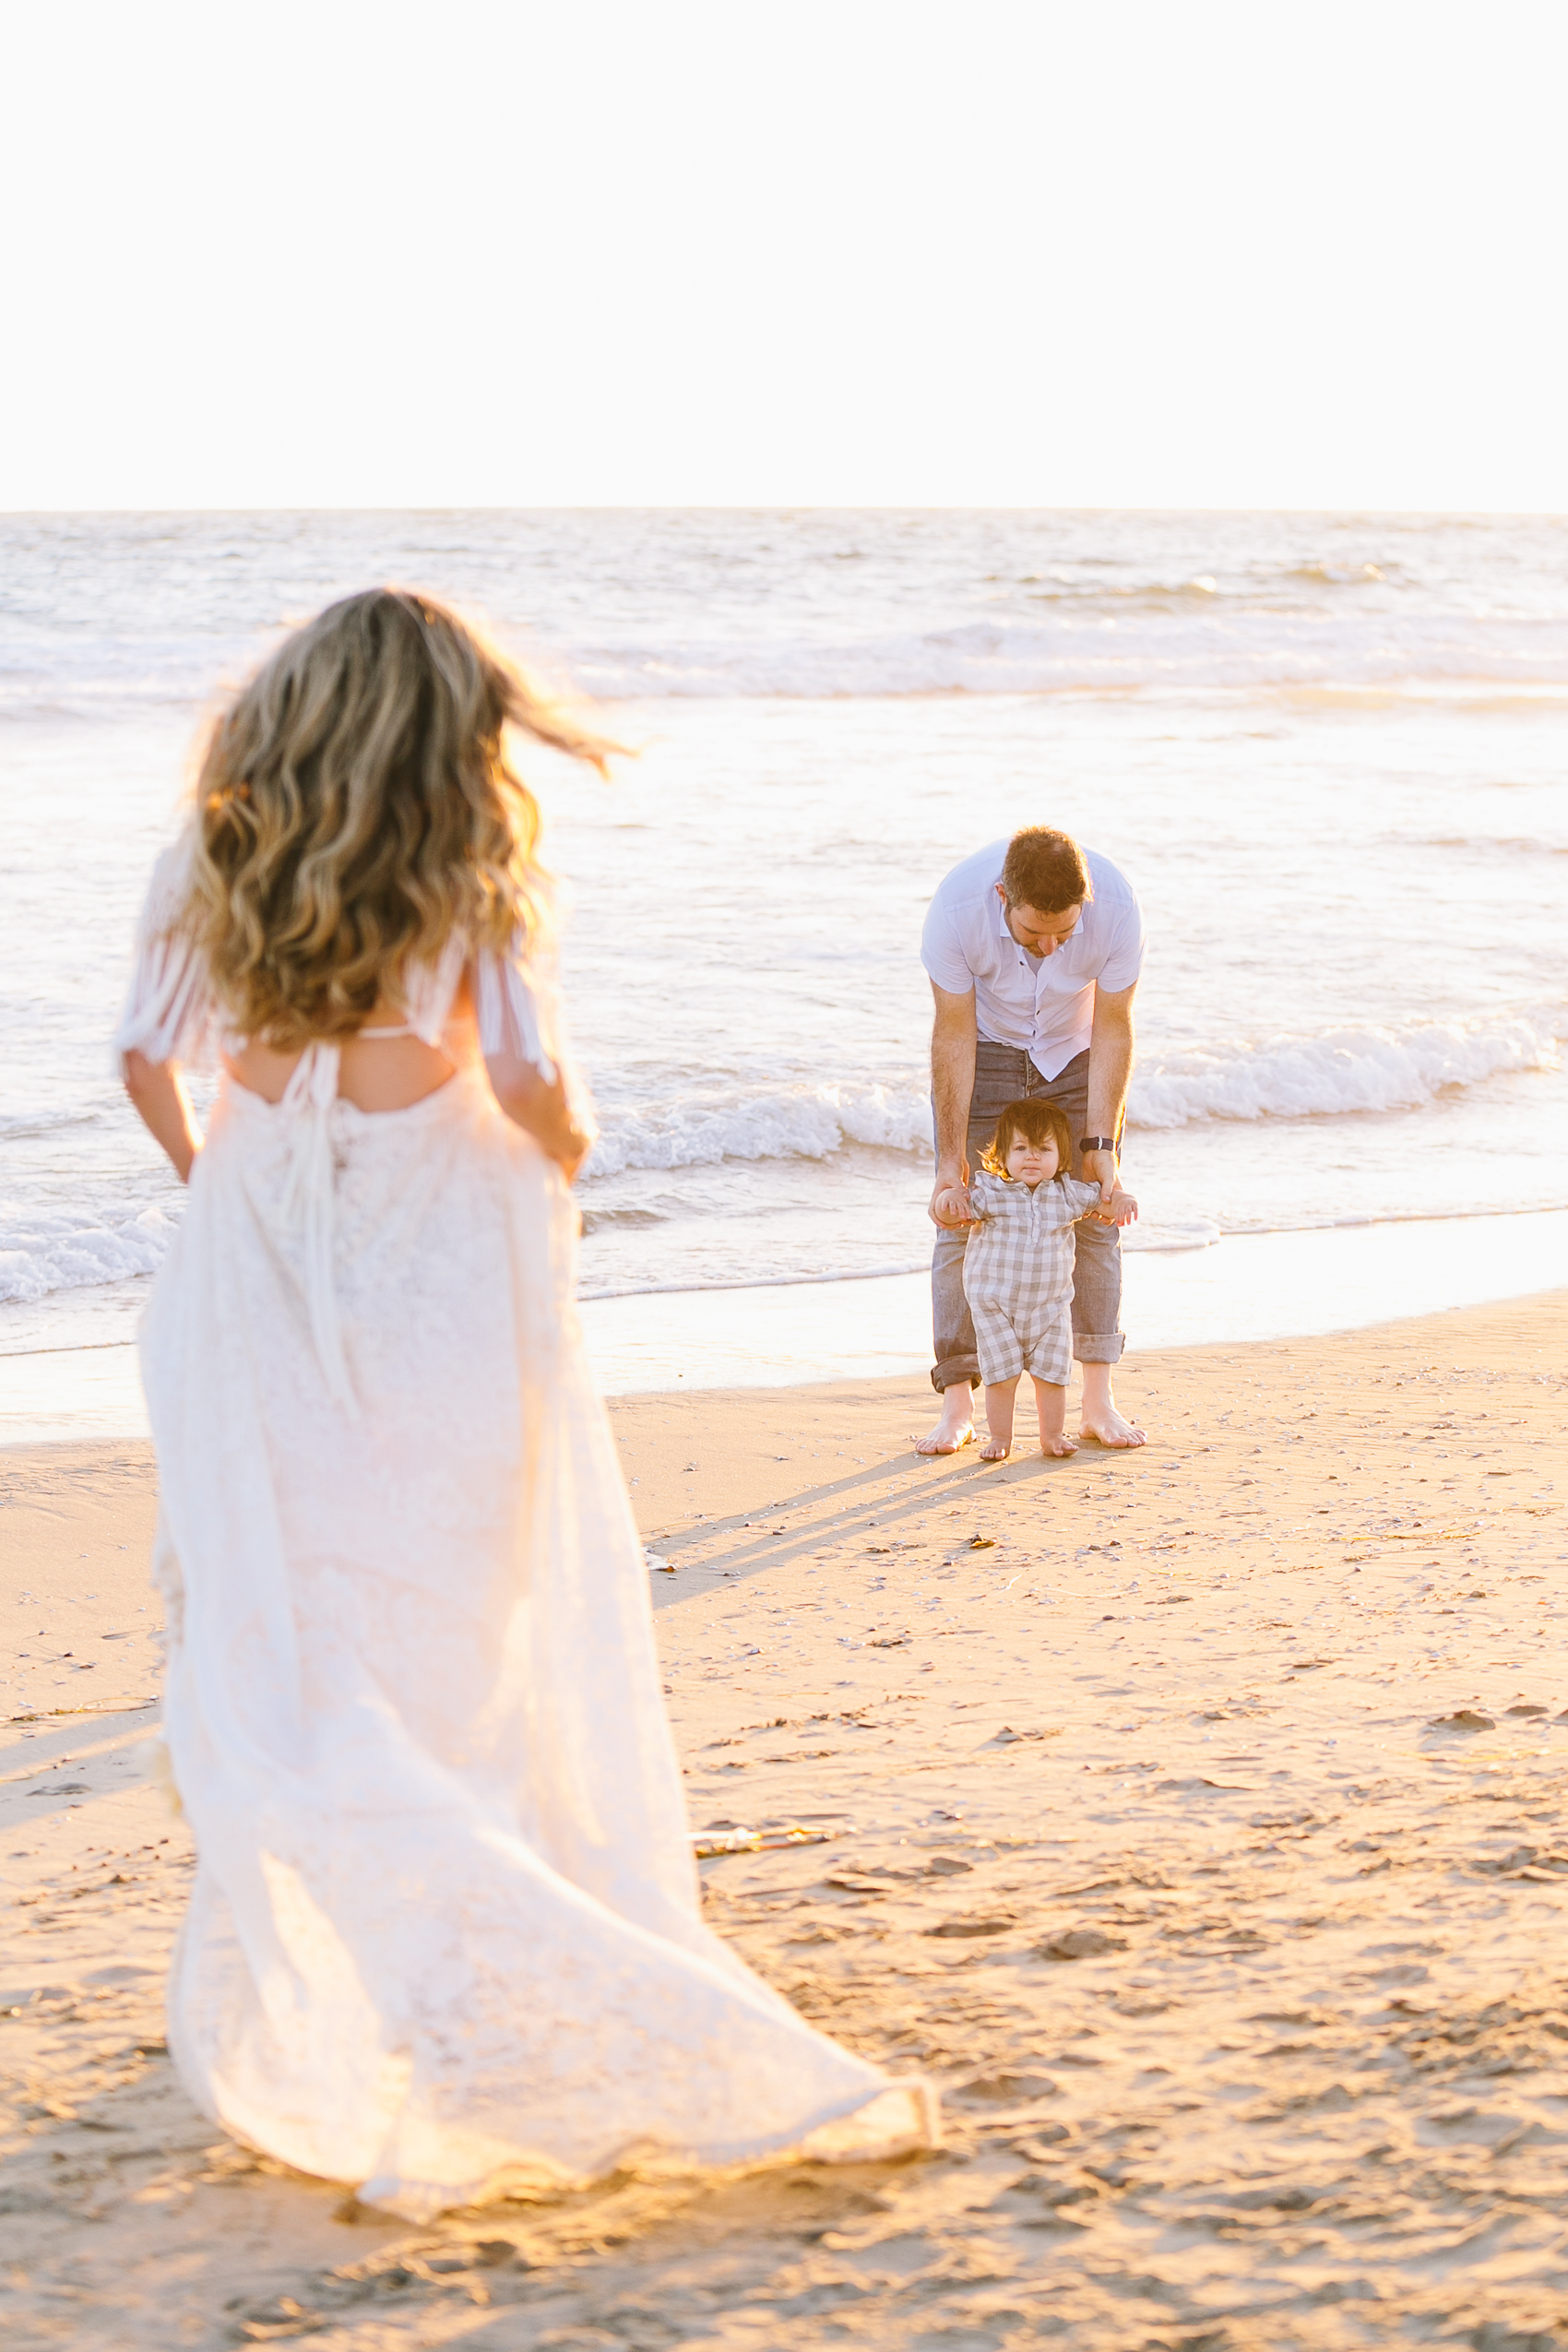 Los_Angeles_Family_Photographer_Maternity_Photos_Baby_Pregnancy_Venice_Beach_Golden_Hour-1014.jpg